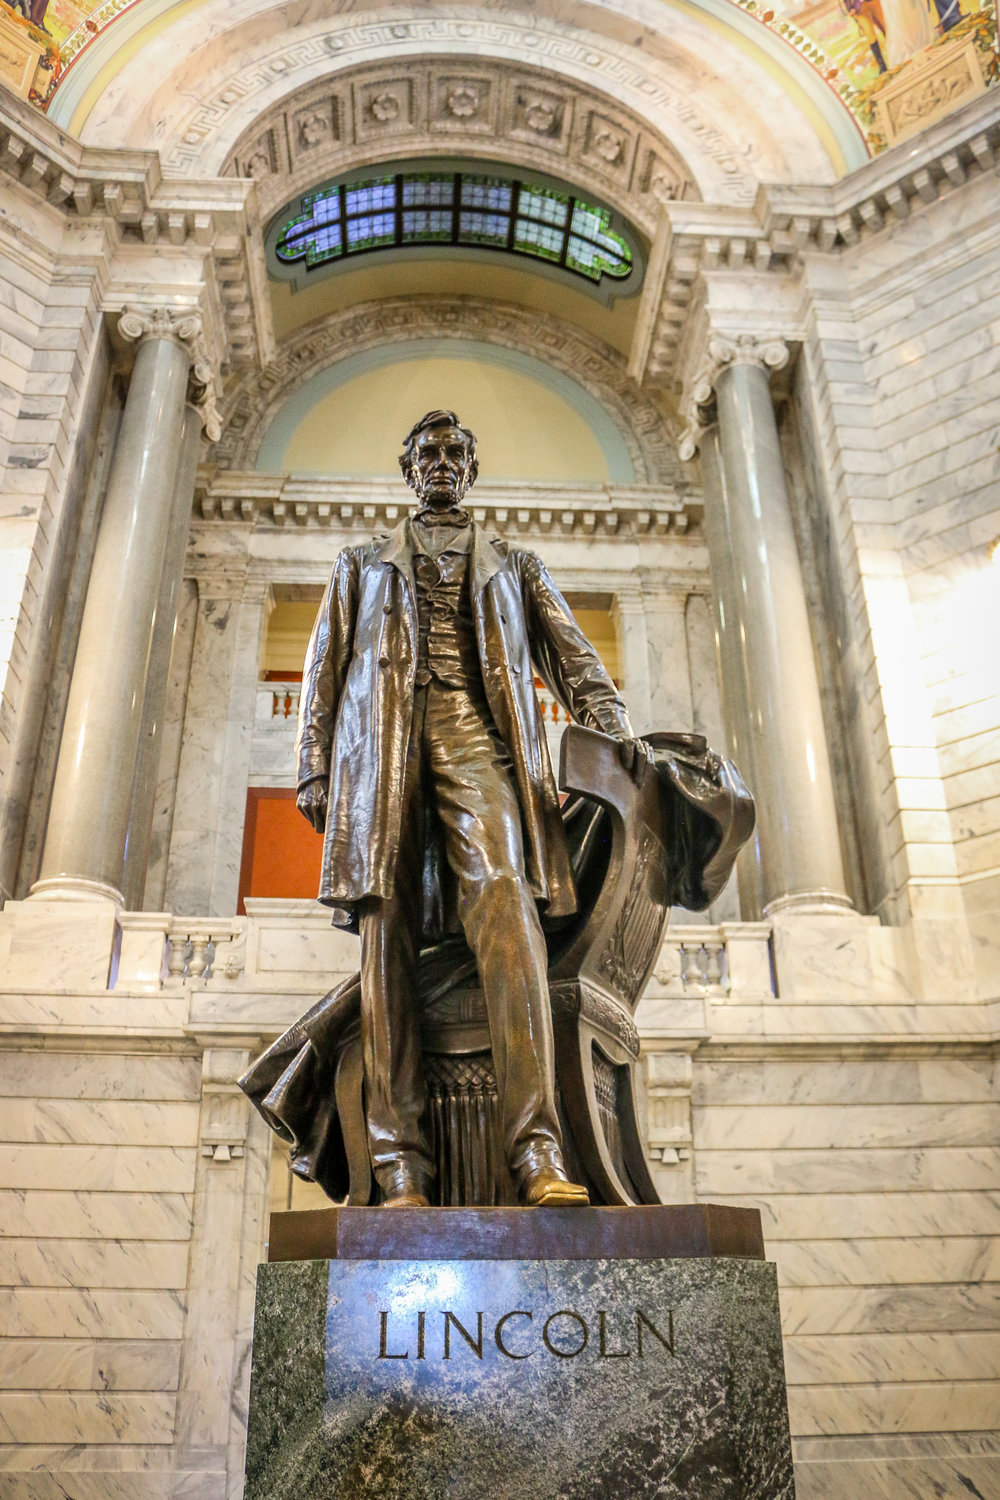 Abraham Lincoln in the Center